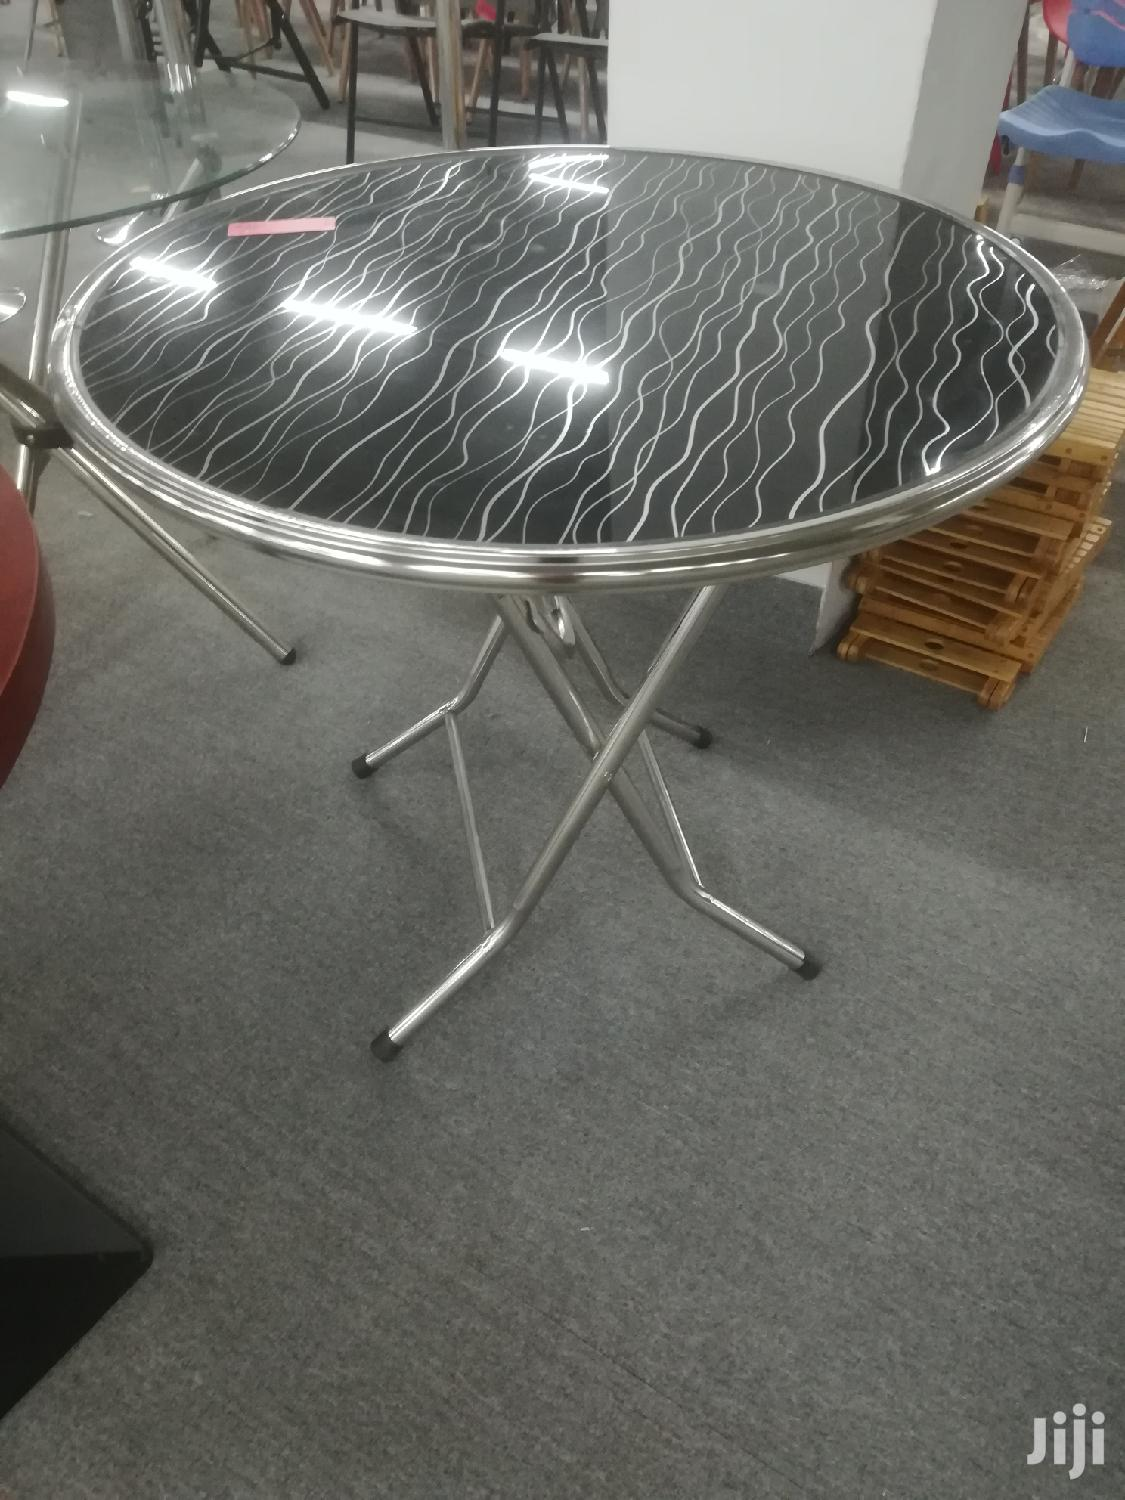 Foldable Table | Furniture for sale in Tema Metropolitan, Greater Accra, Ghana